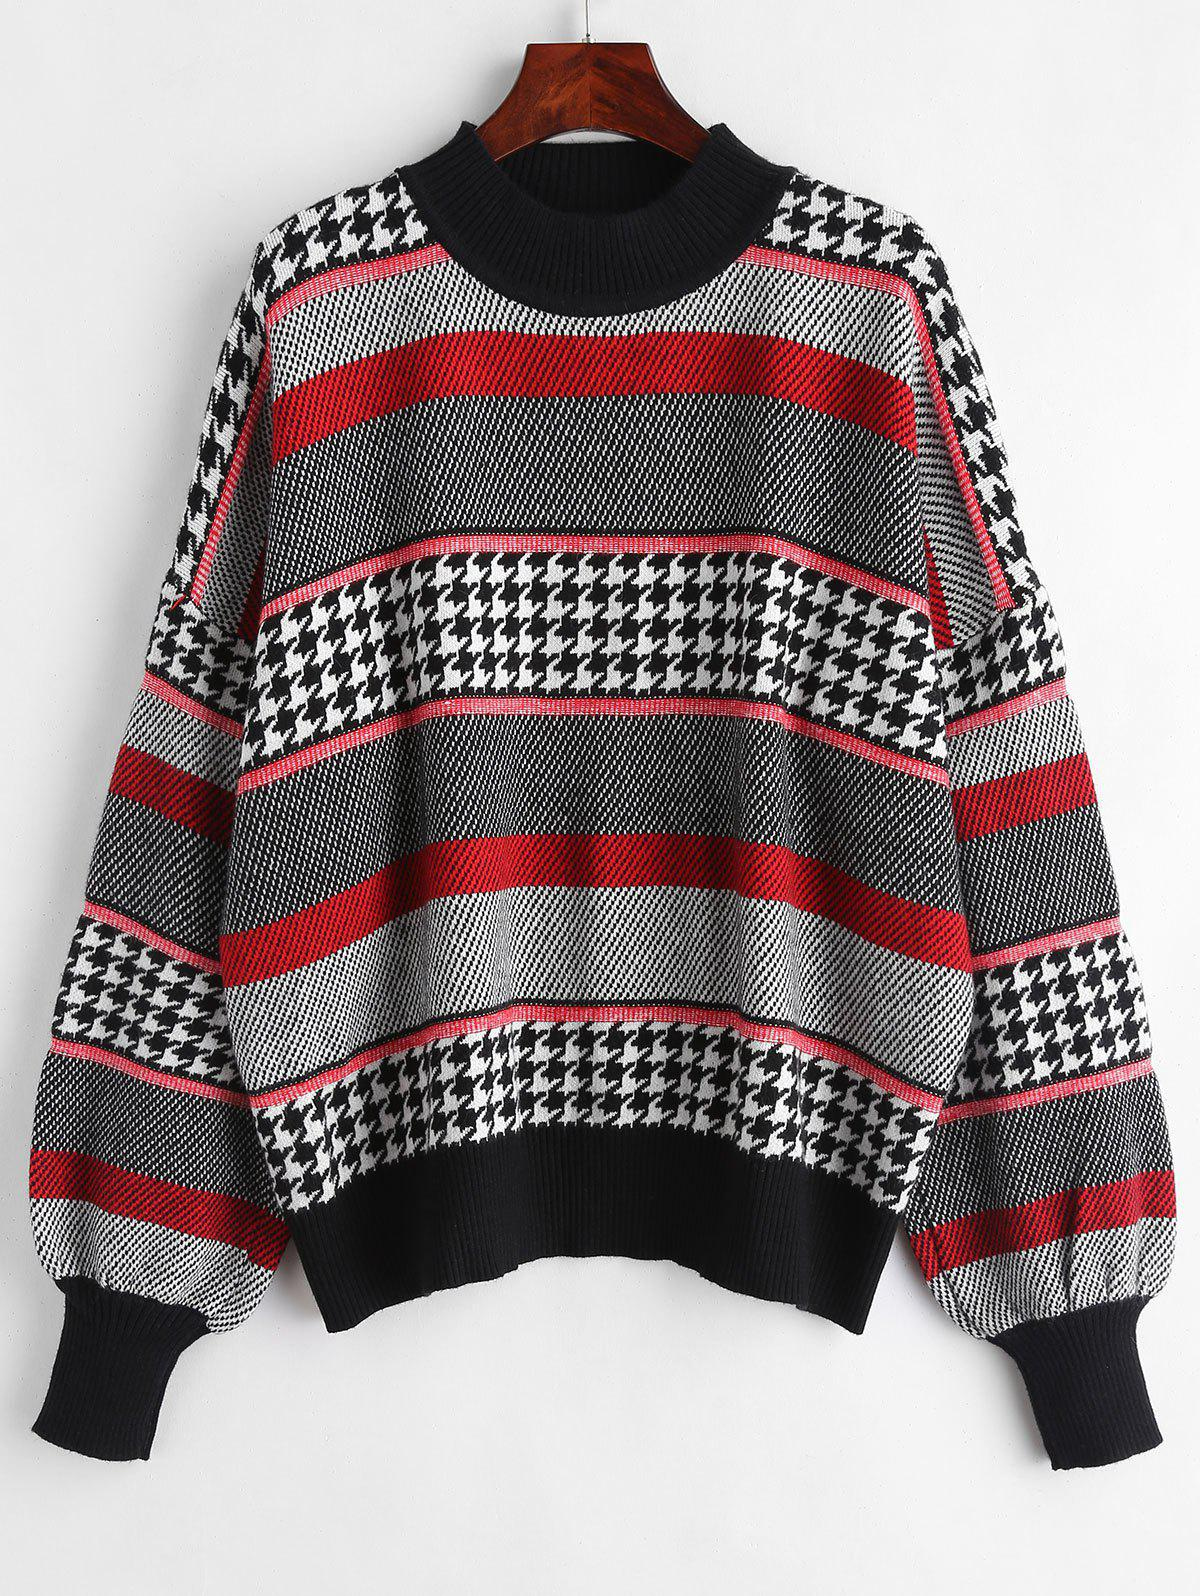 b93fdcf0bc05 Houndstooth Plus Size Graphic Sweater - One Size